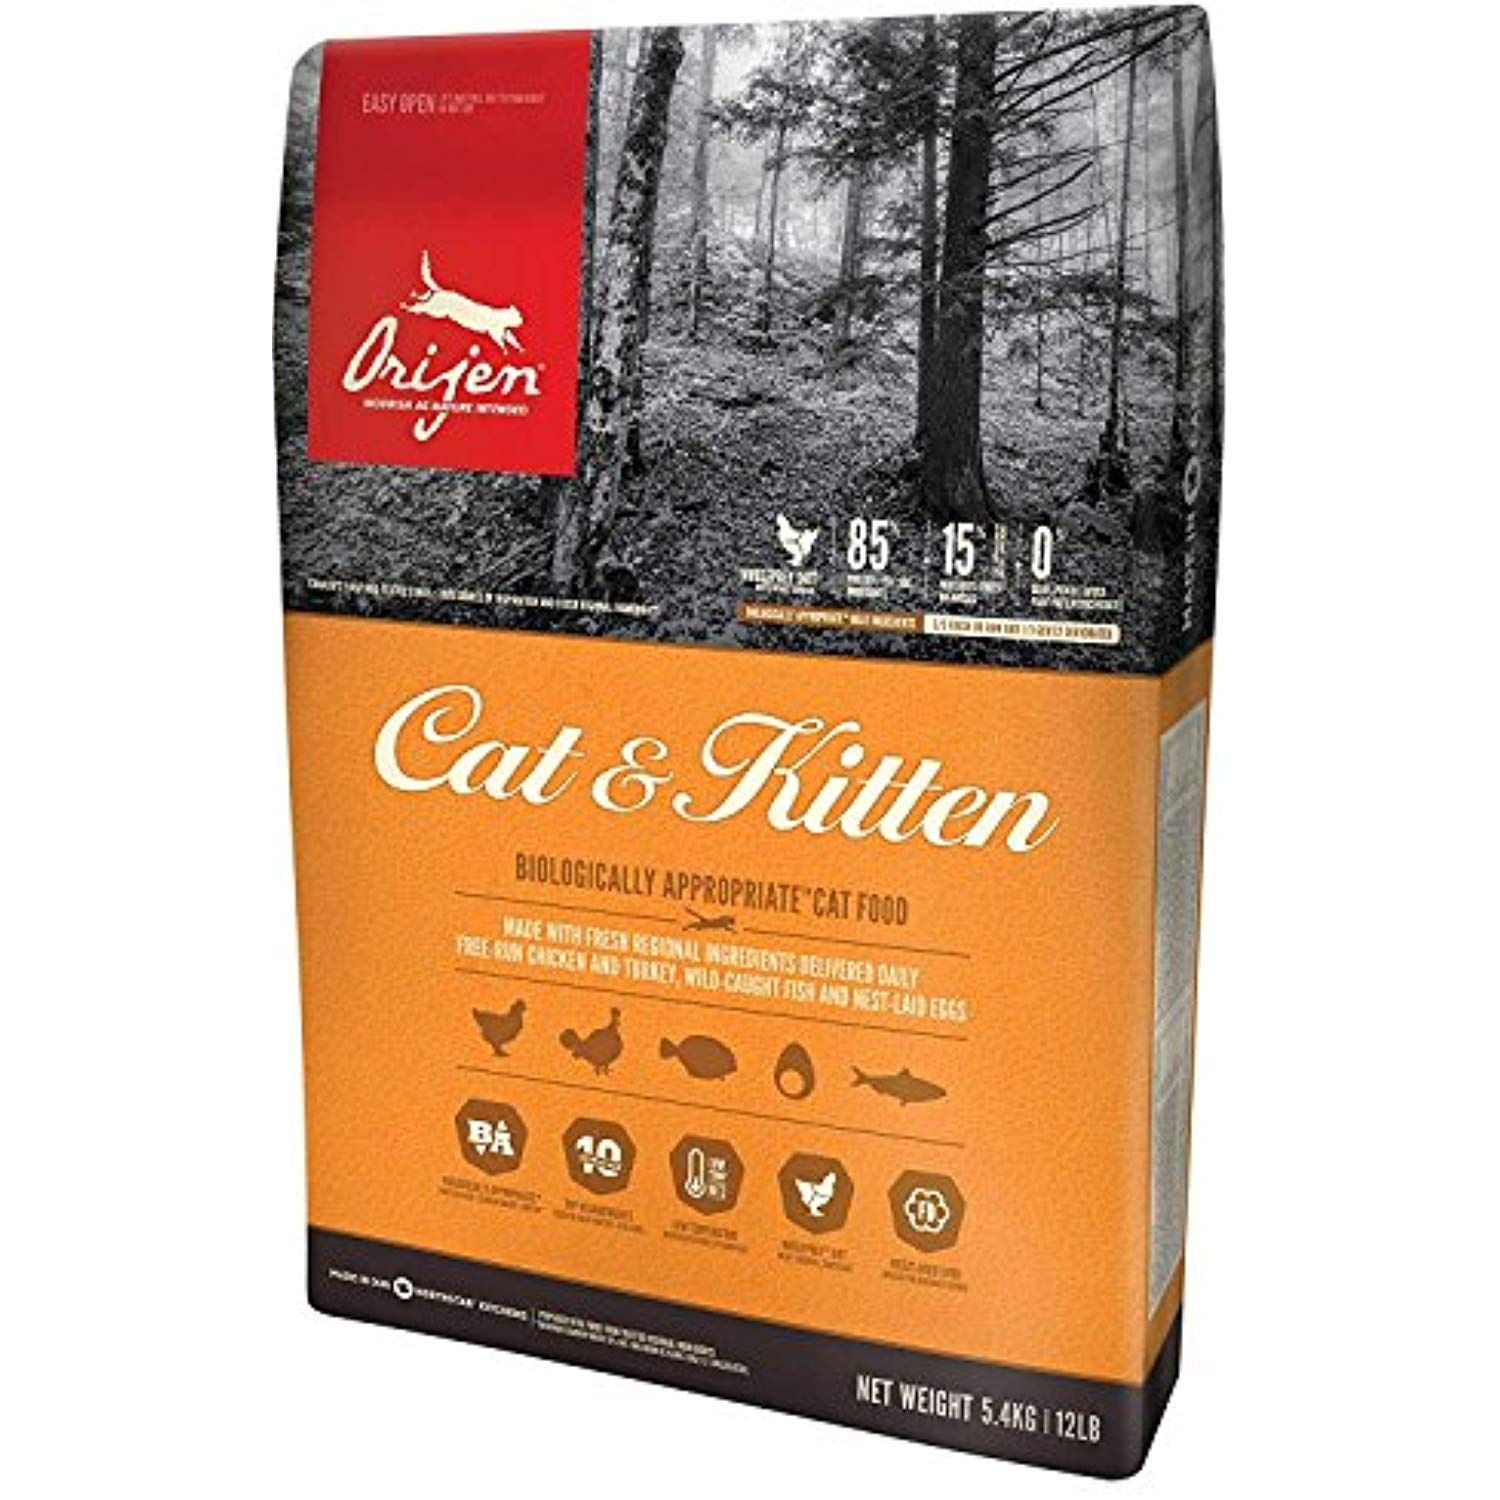 Orijen Cat And Kitten Dry Cat Food 12 Lb Bag Fast Delivery By